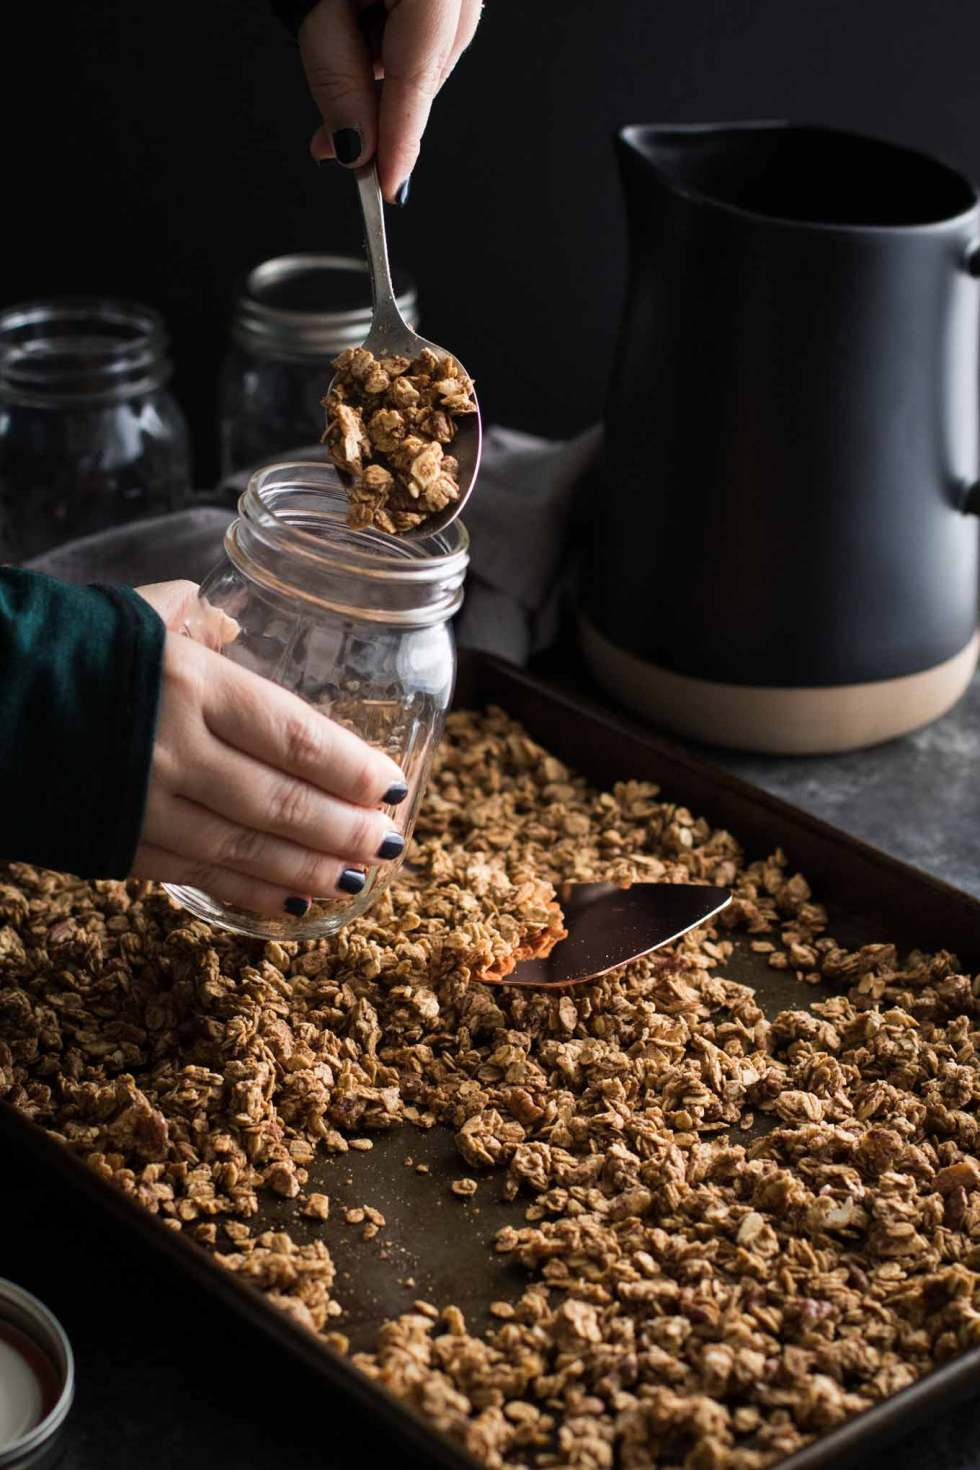 Spooning baked crunchy chai spiced granola from the pan into jars